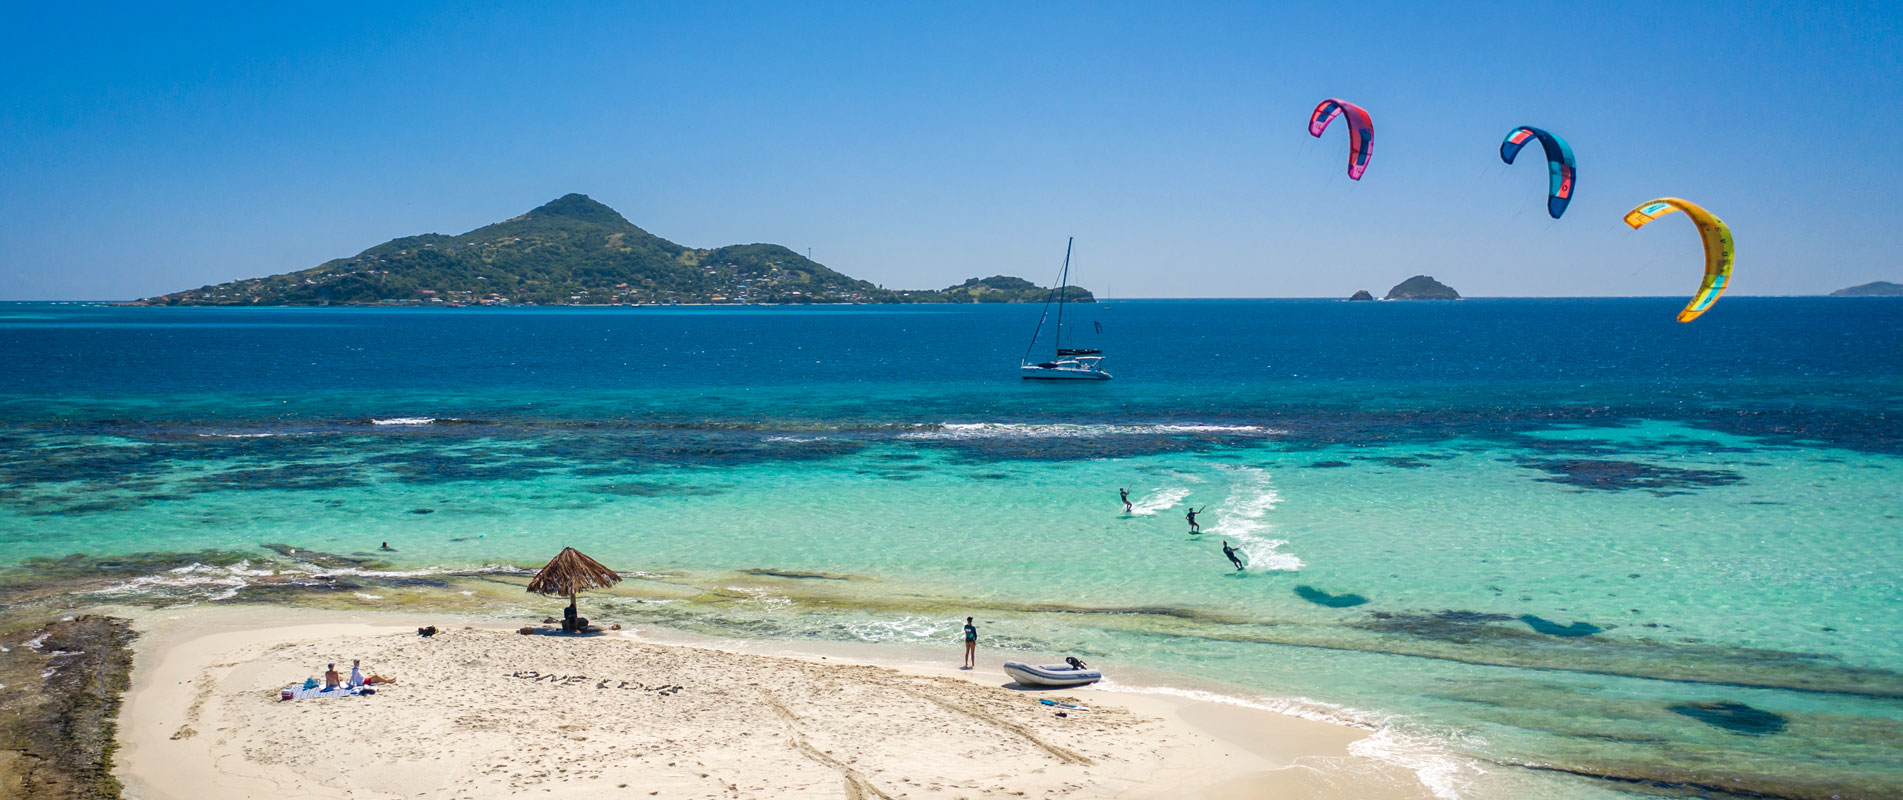 Kitesurfing in the Grenadines